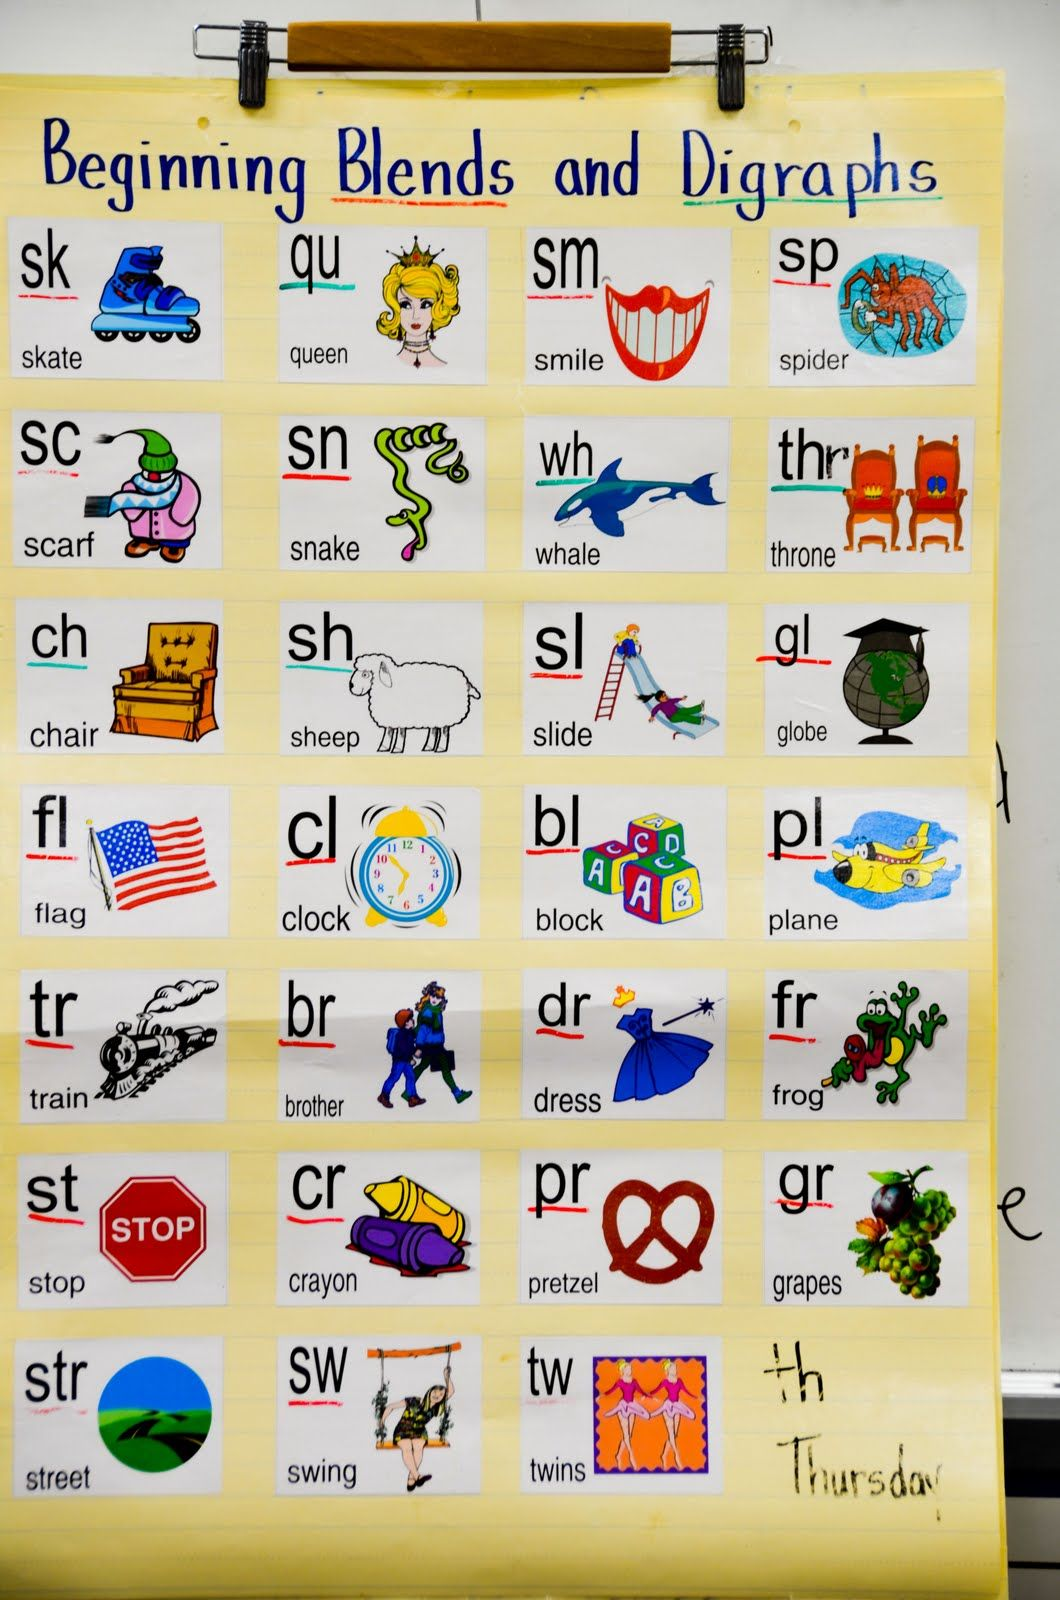 Anchor Chart For Beginning Blends And Digraphs Also Has A Letter Combinations Ones Too Maybe I